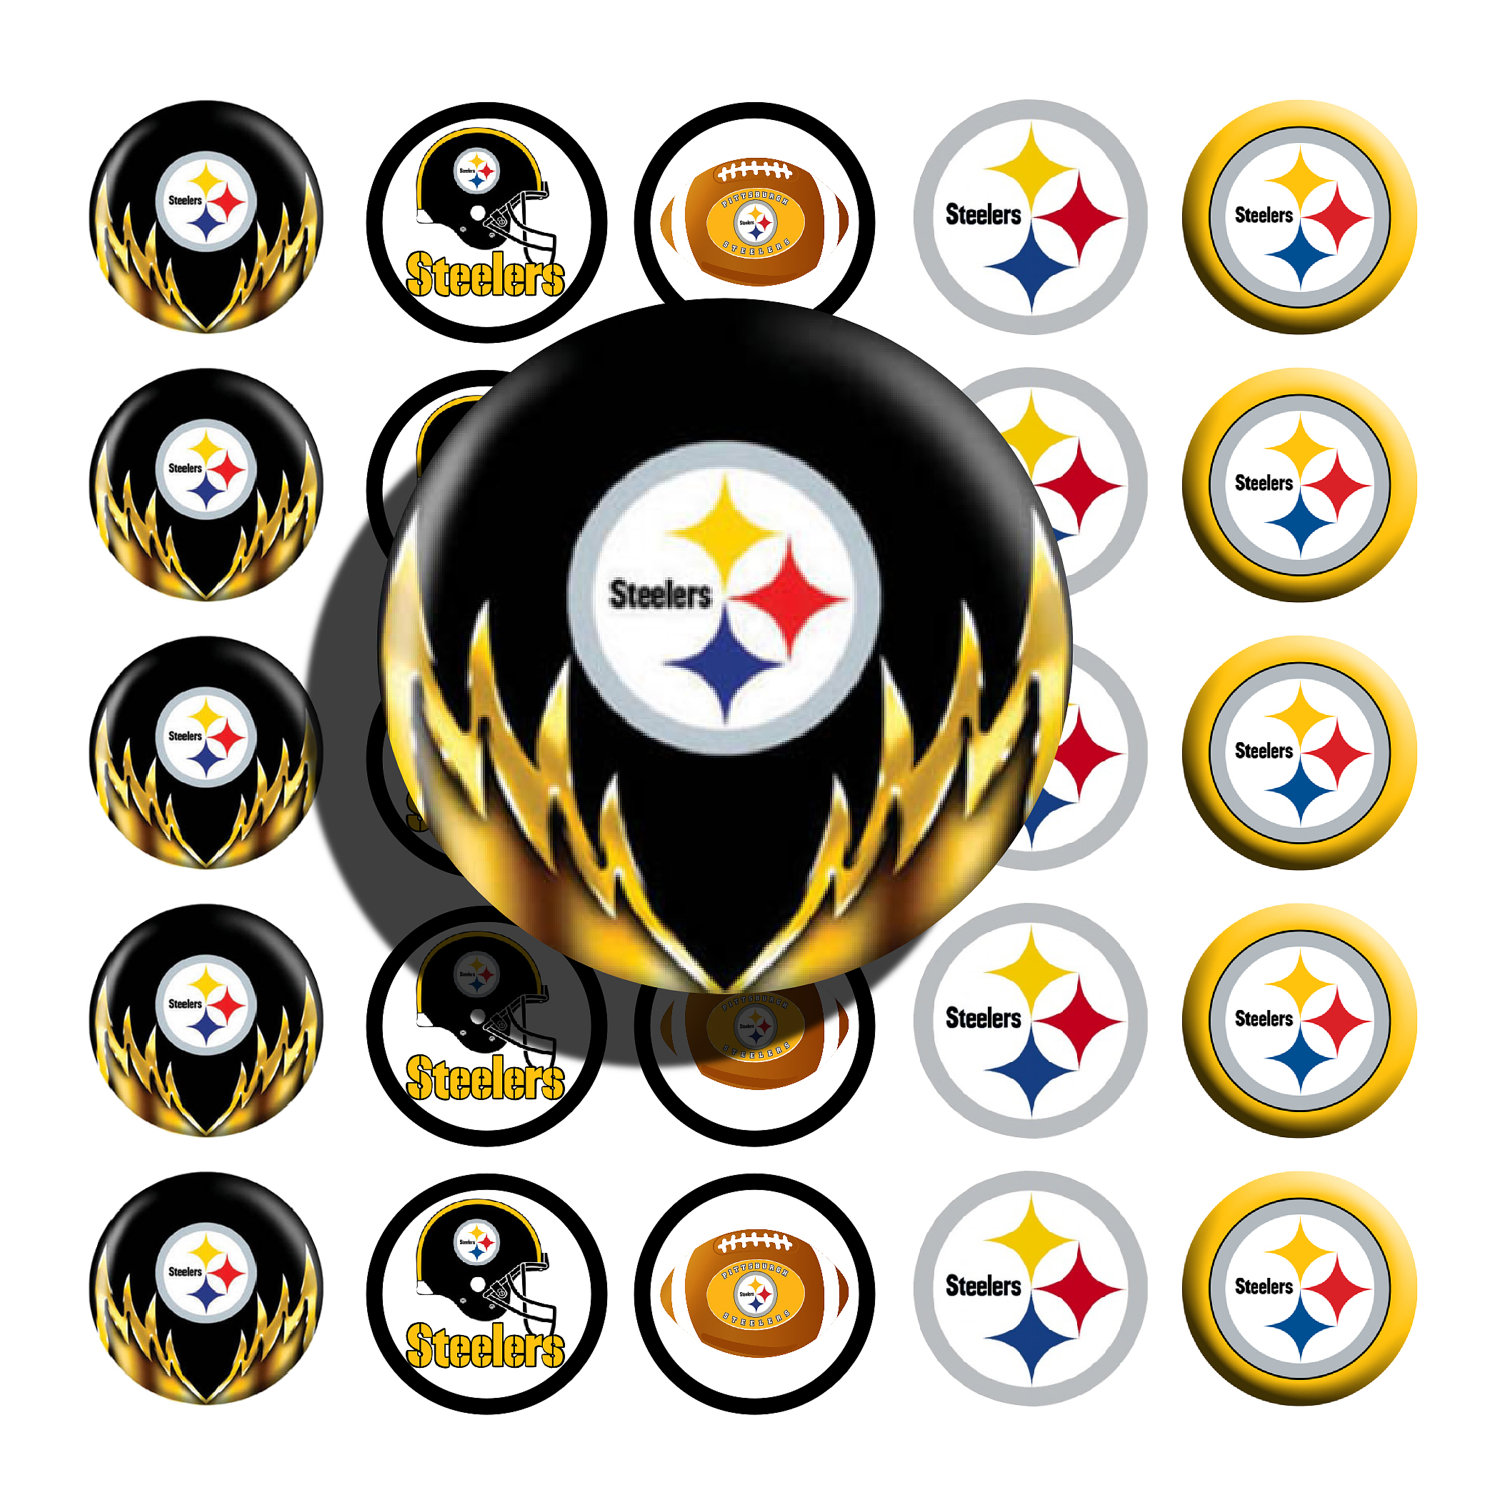 Pittsburgh steelers clipart banner royalty free stock Best Steelers Clip Art #21415 - Clipartion.com banner royalty free stock